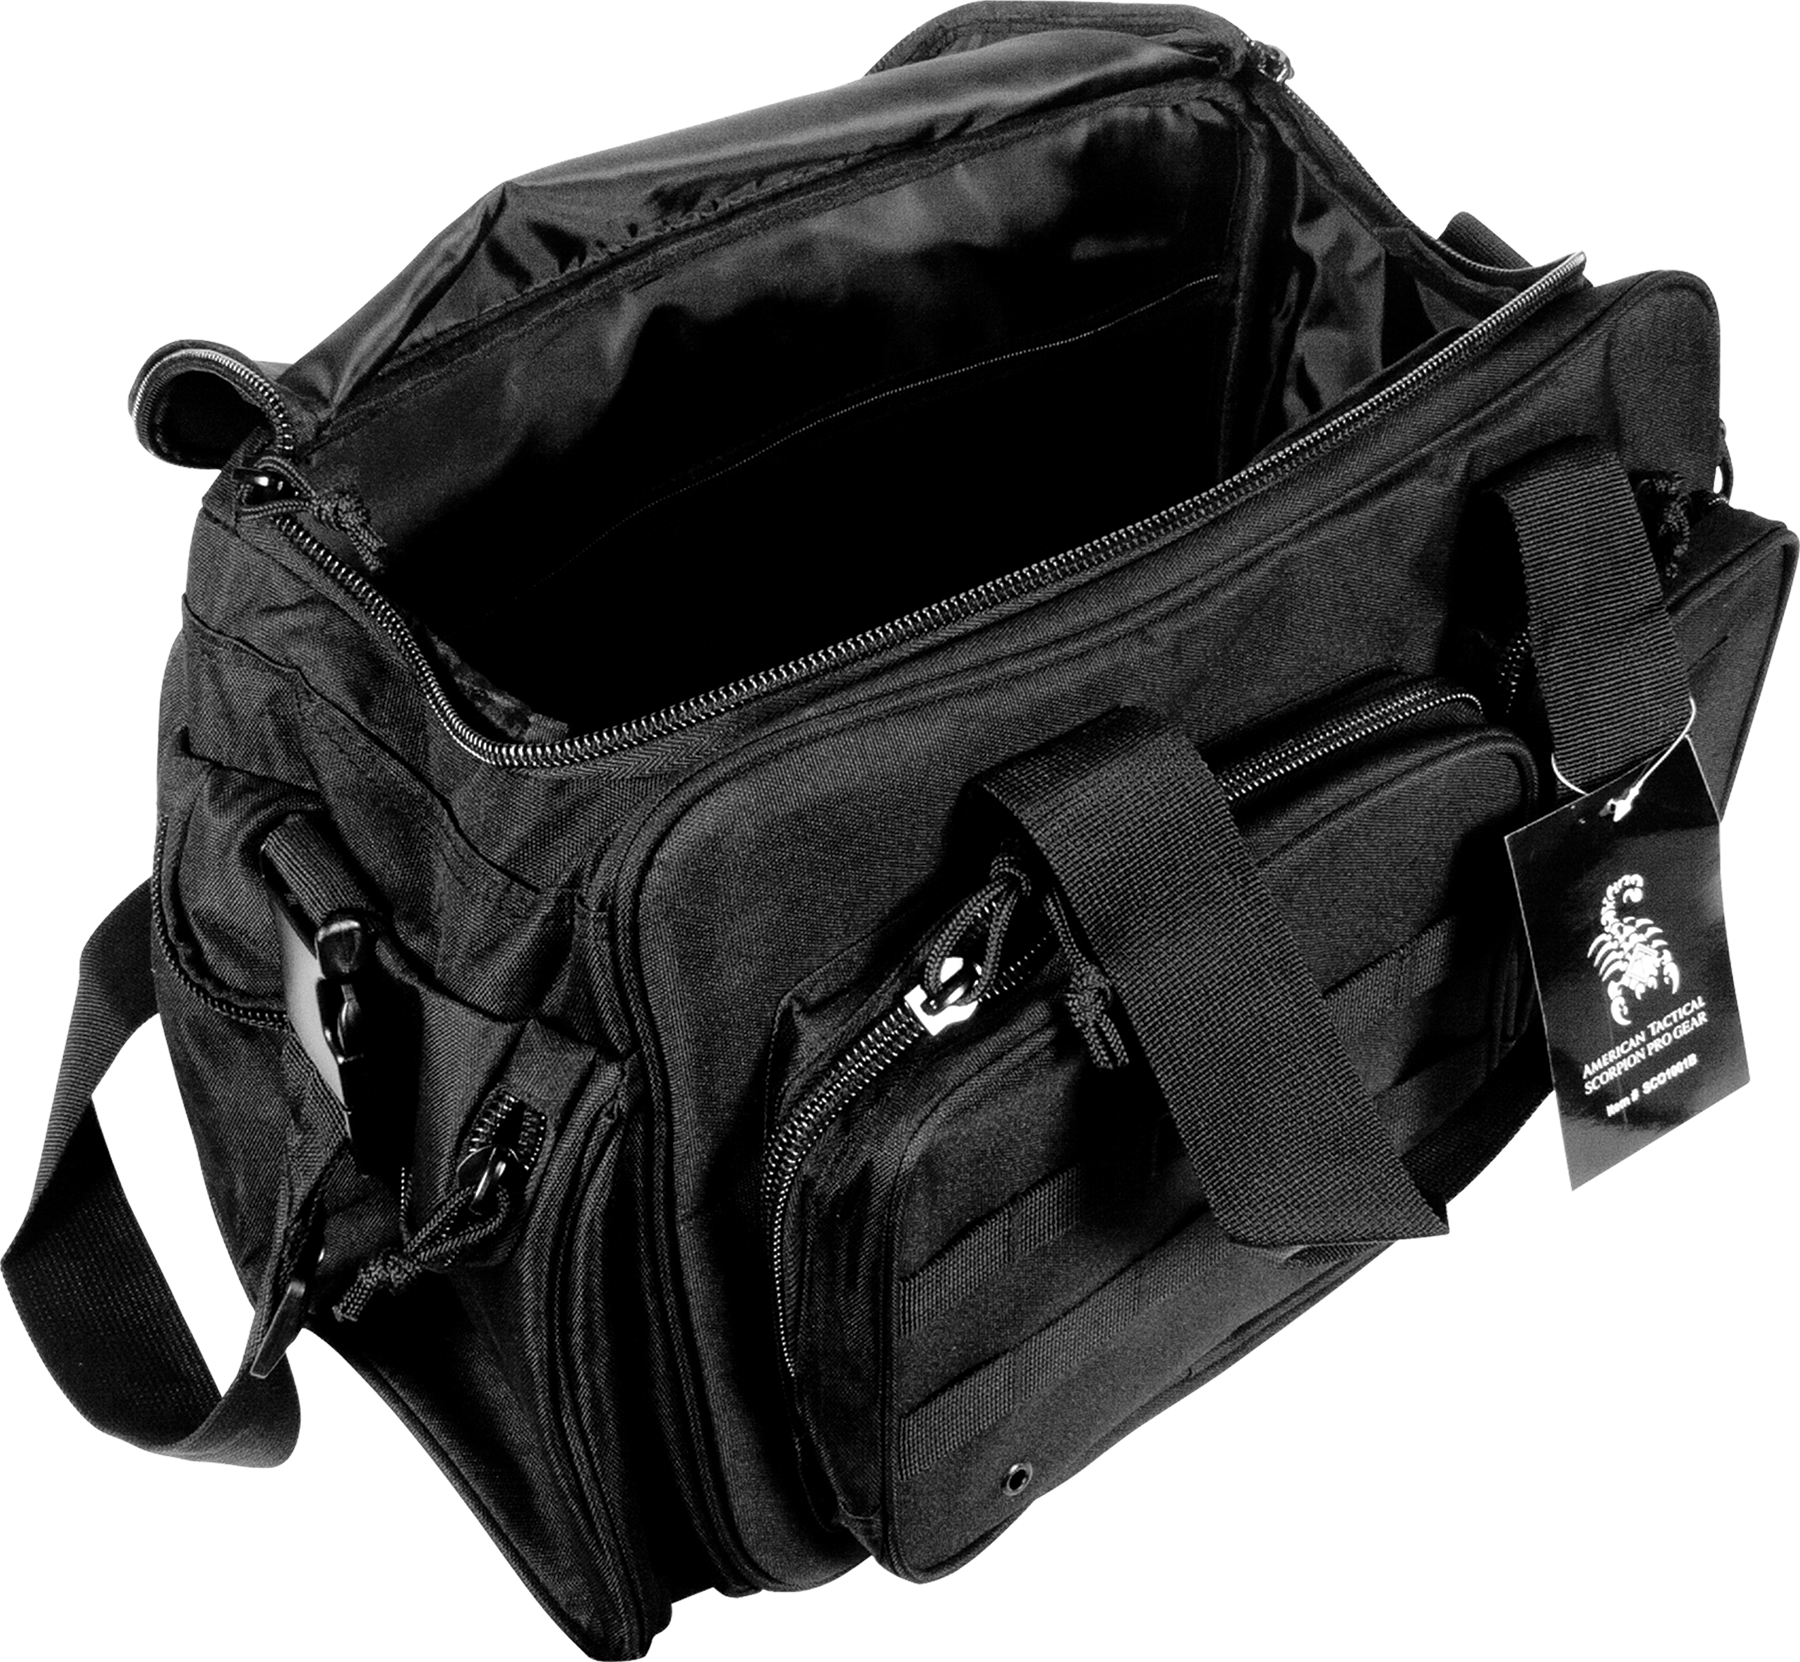 ATI SC01001B Scorpion Pro Gear Range Bag Canvas 22